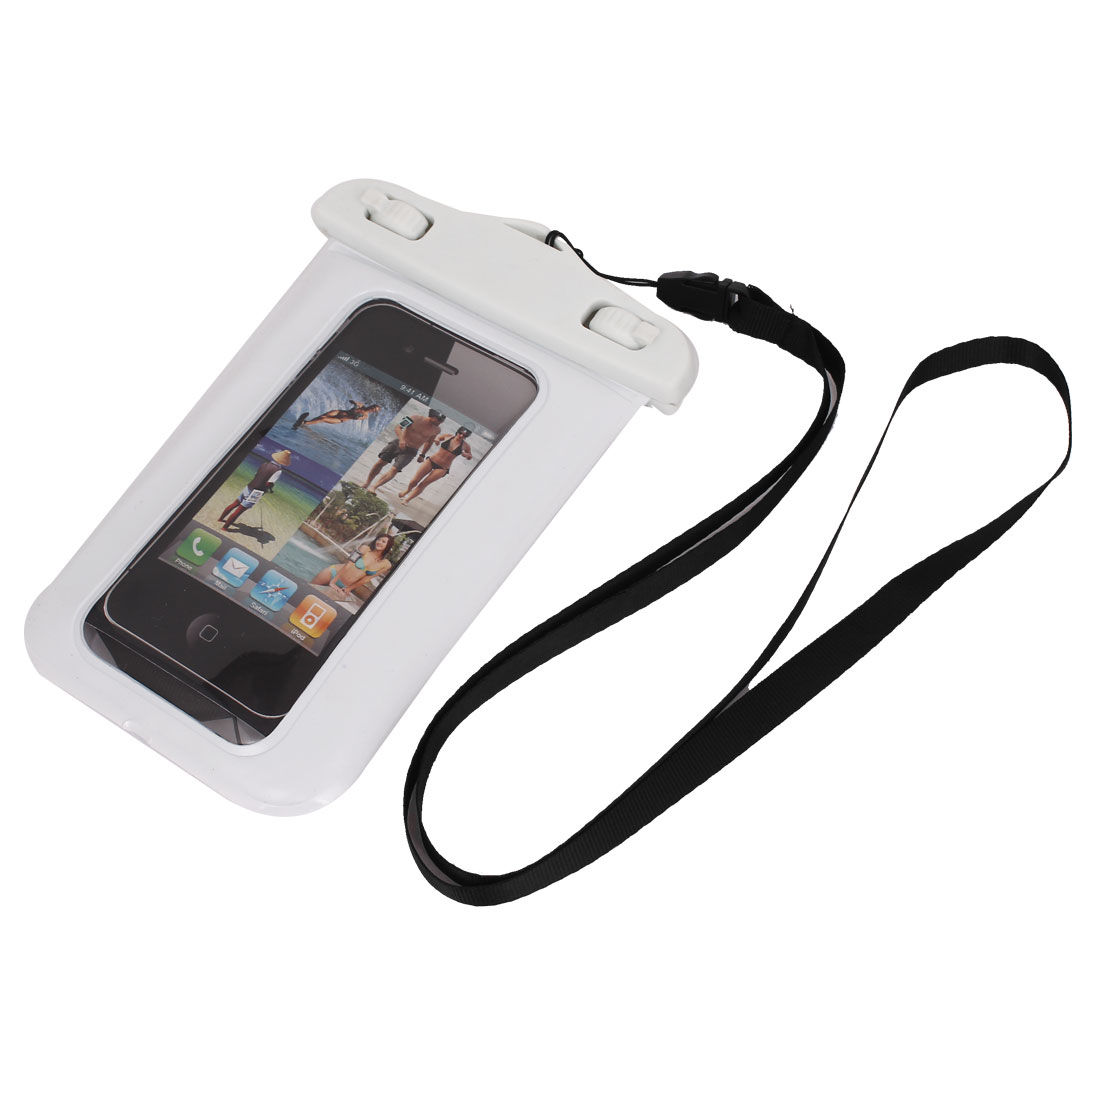 Unique Bargains Waterproof Case Dry Bag Cover Skin Pouch White + Neck Strap for Cell Phone